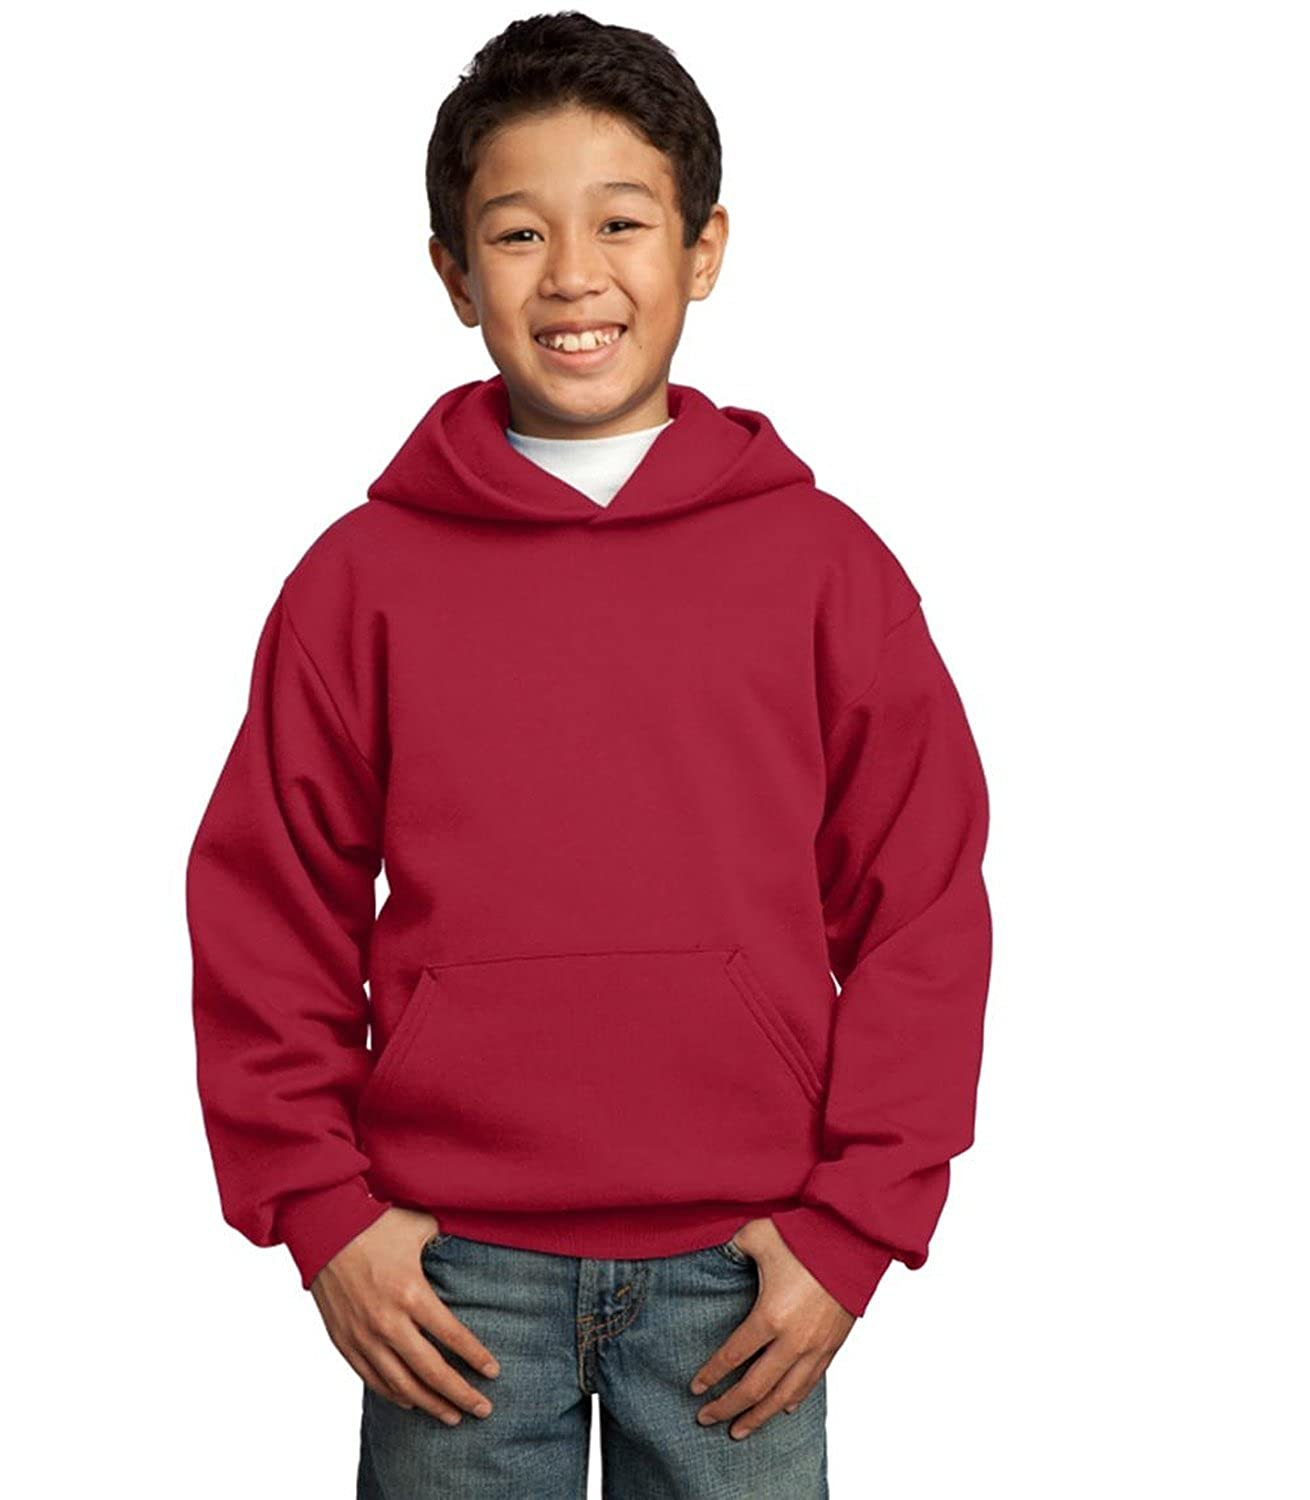 Red Sm Port /& Company Youth Pullover Hooded Sweatshirt